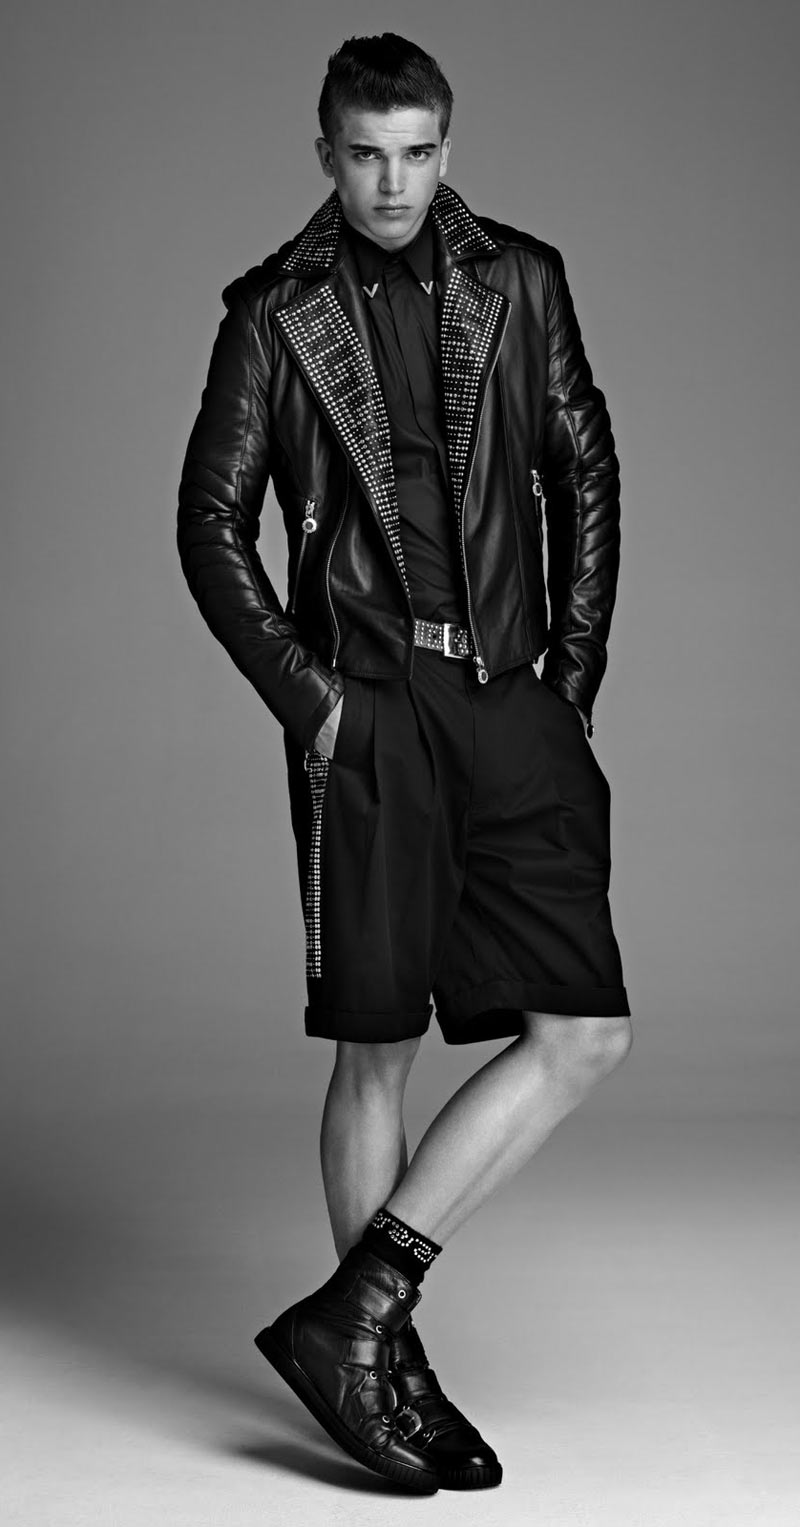 River-Viiperi-for-Versace-hm-preview-2